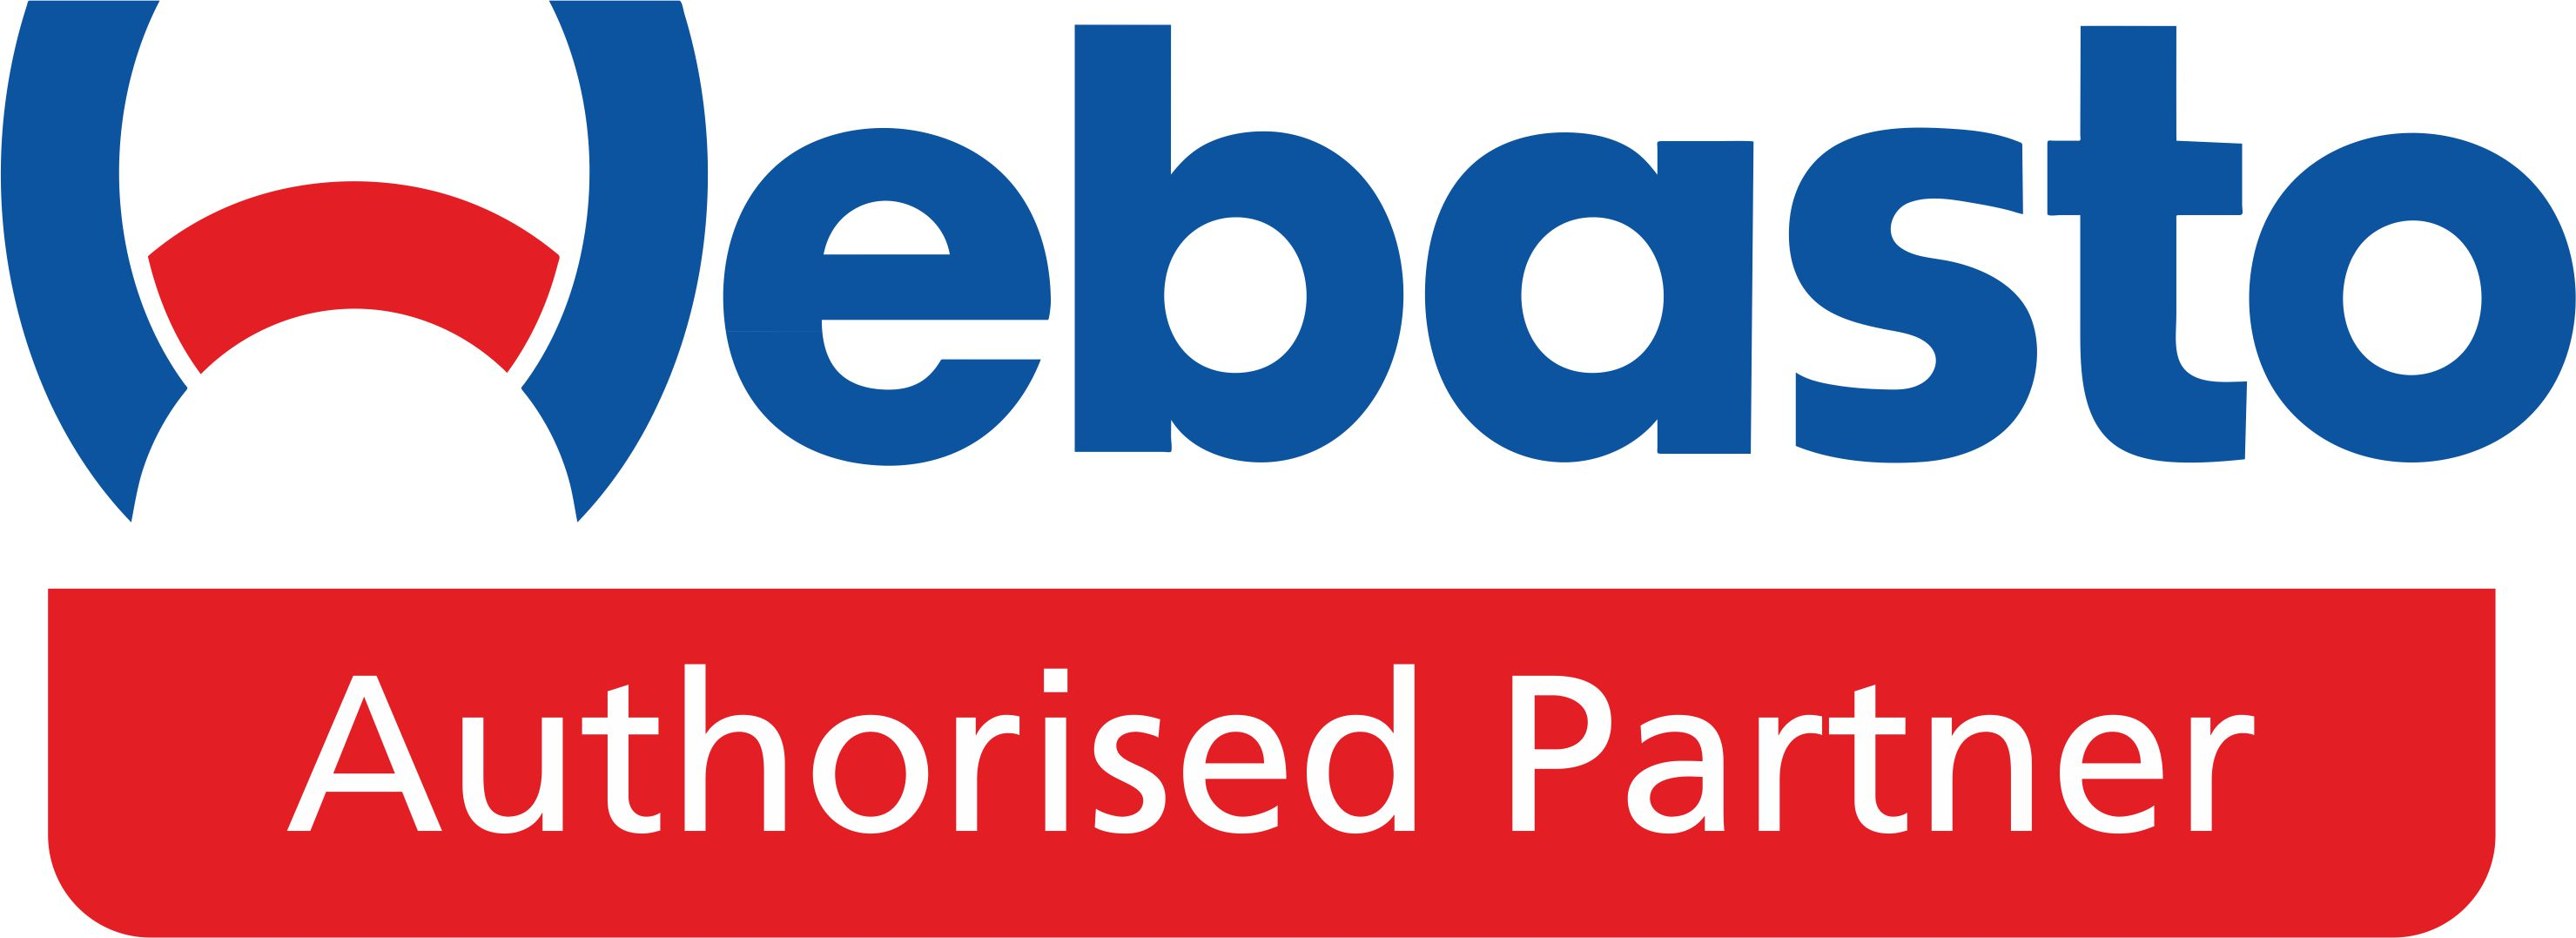 Webasto Authorised Partner